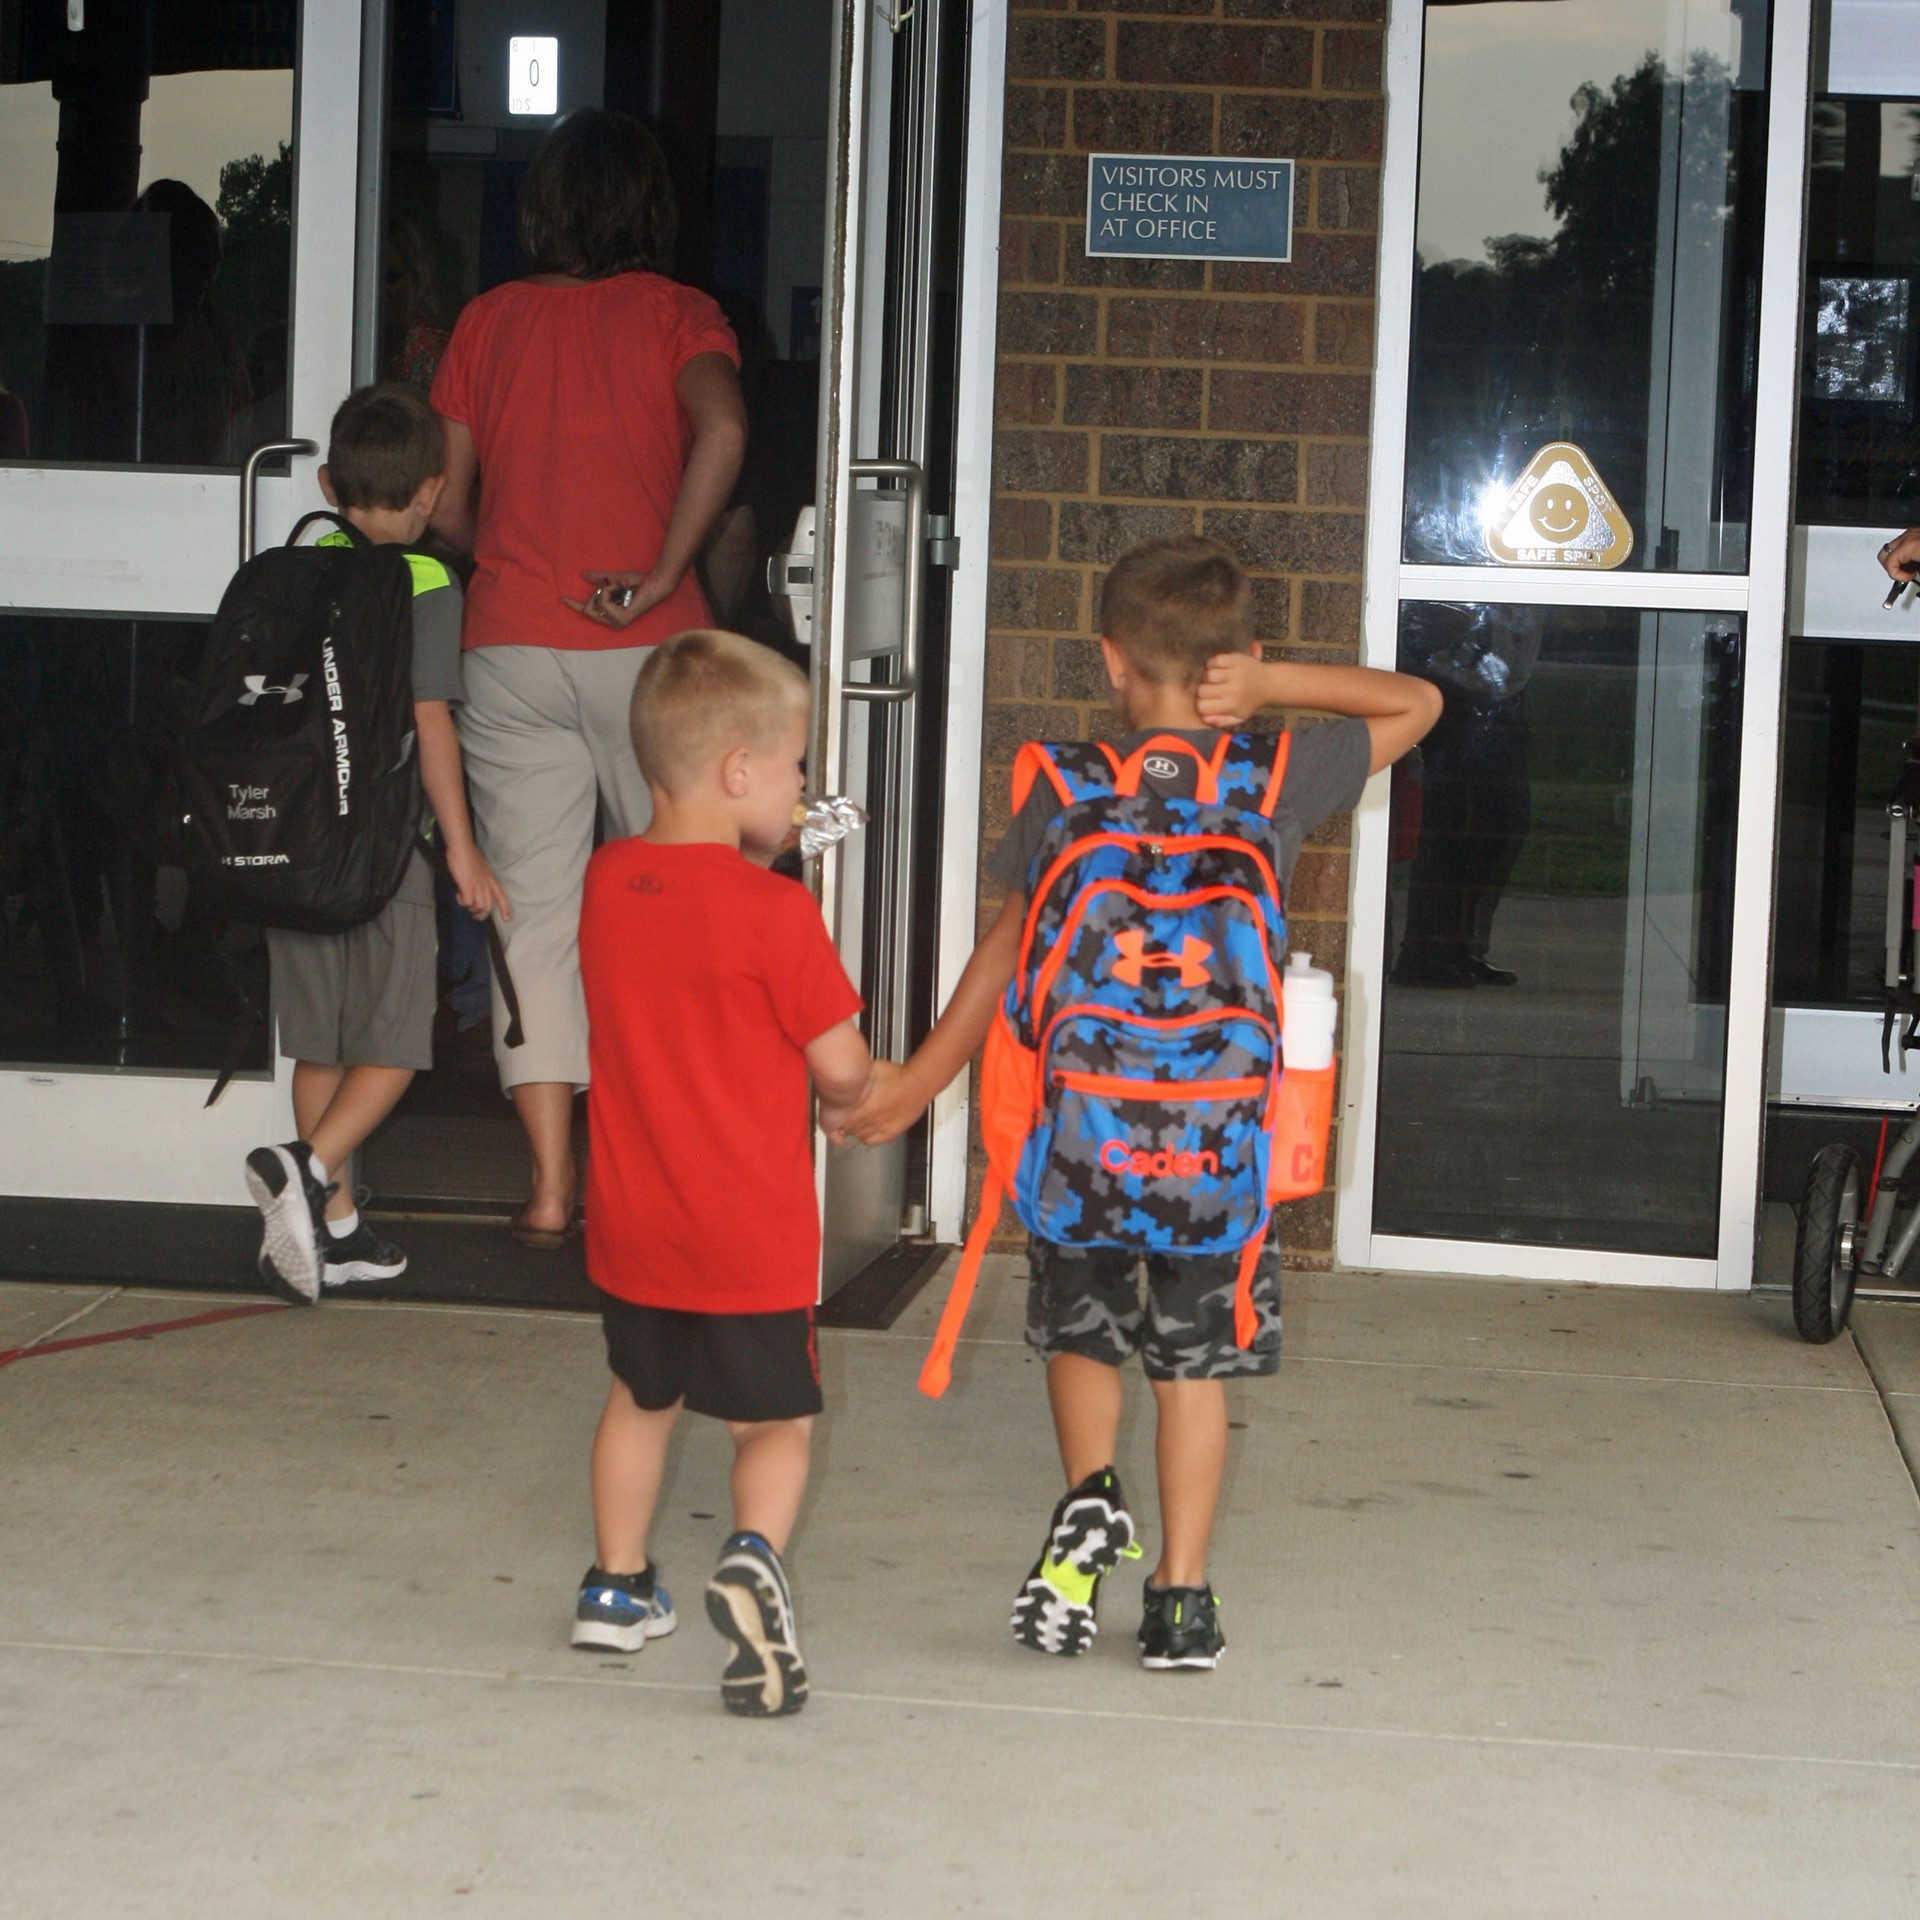 Off to school to start the 2015-16 school year.